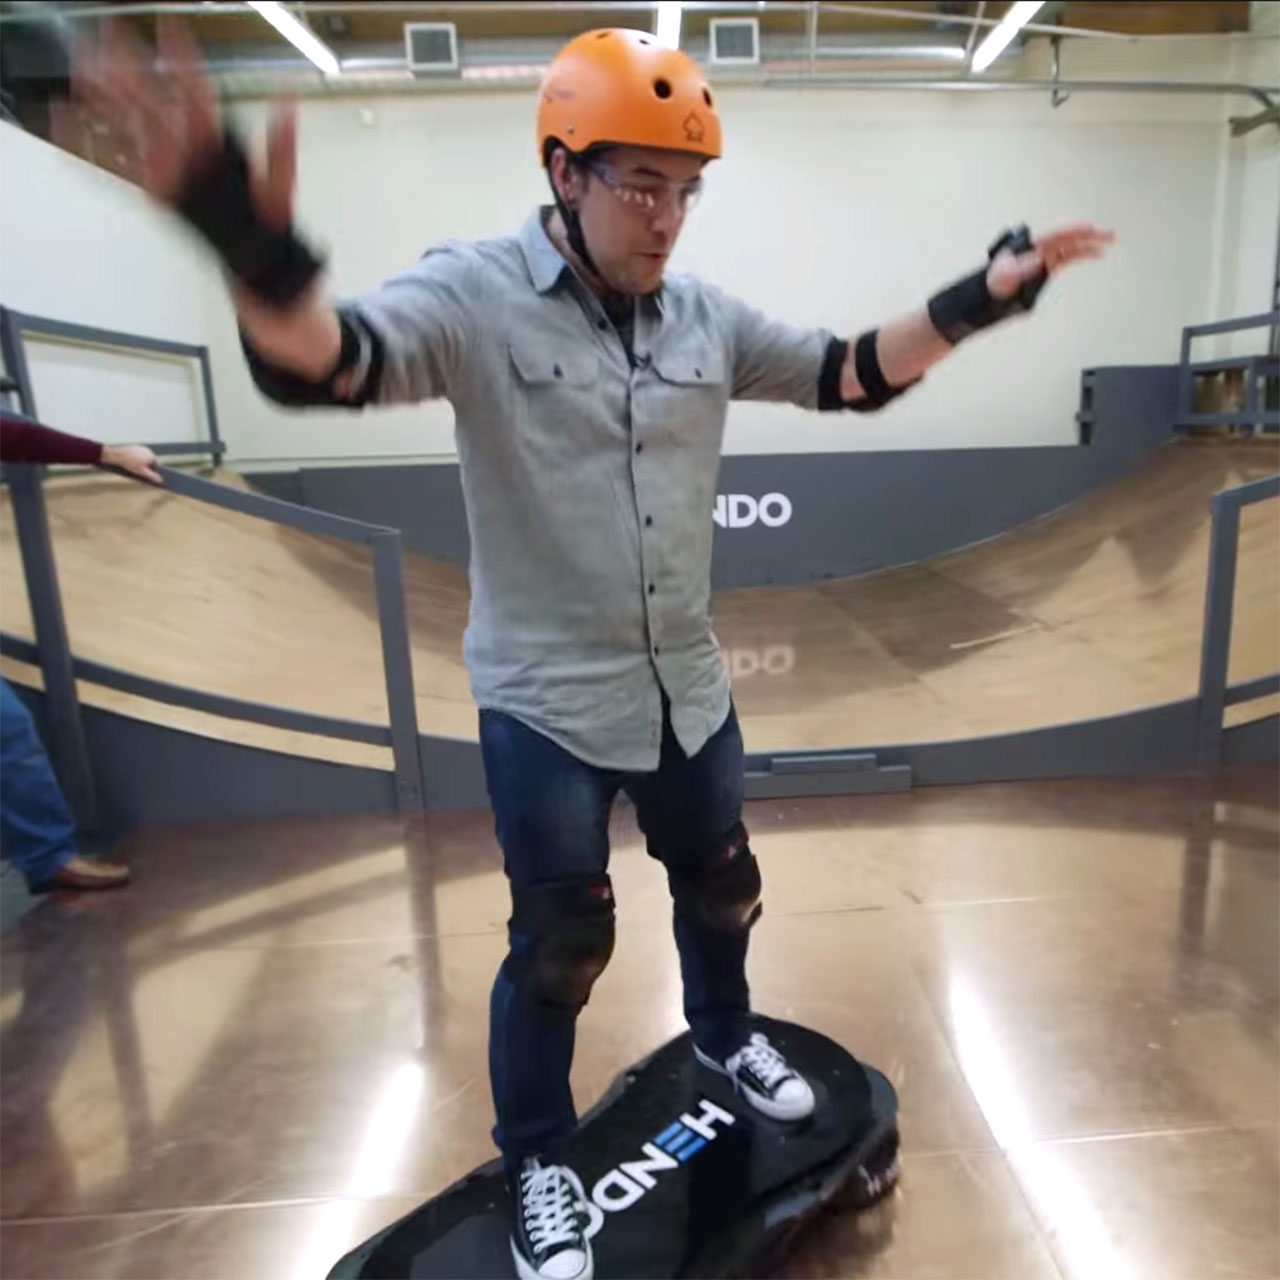 Hendo Hoverboard will let you float for 10,000 dollars